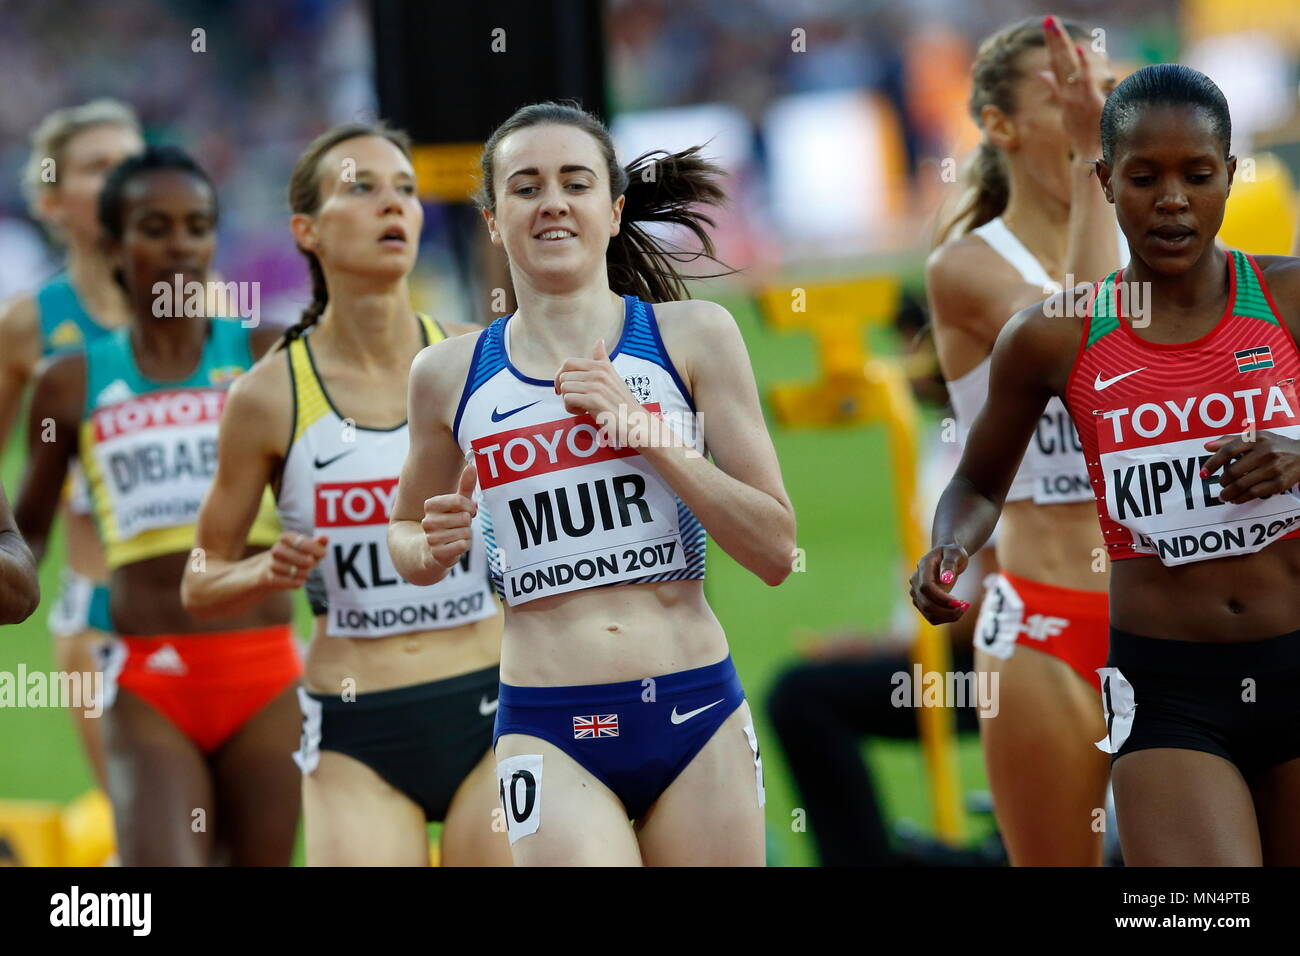 LONDON, ENGLAND - AUGUST 05: during day two of the 16th IAAF World Athletics Championships London 2017 at The London Stadium on August 5, 2017 in London, United Kingdom.  --- Image by © Paul Cunningham - Stock Image